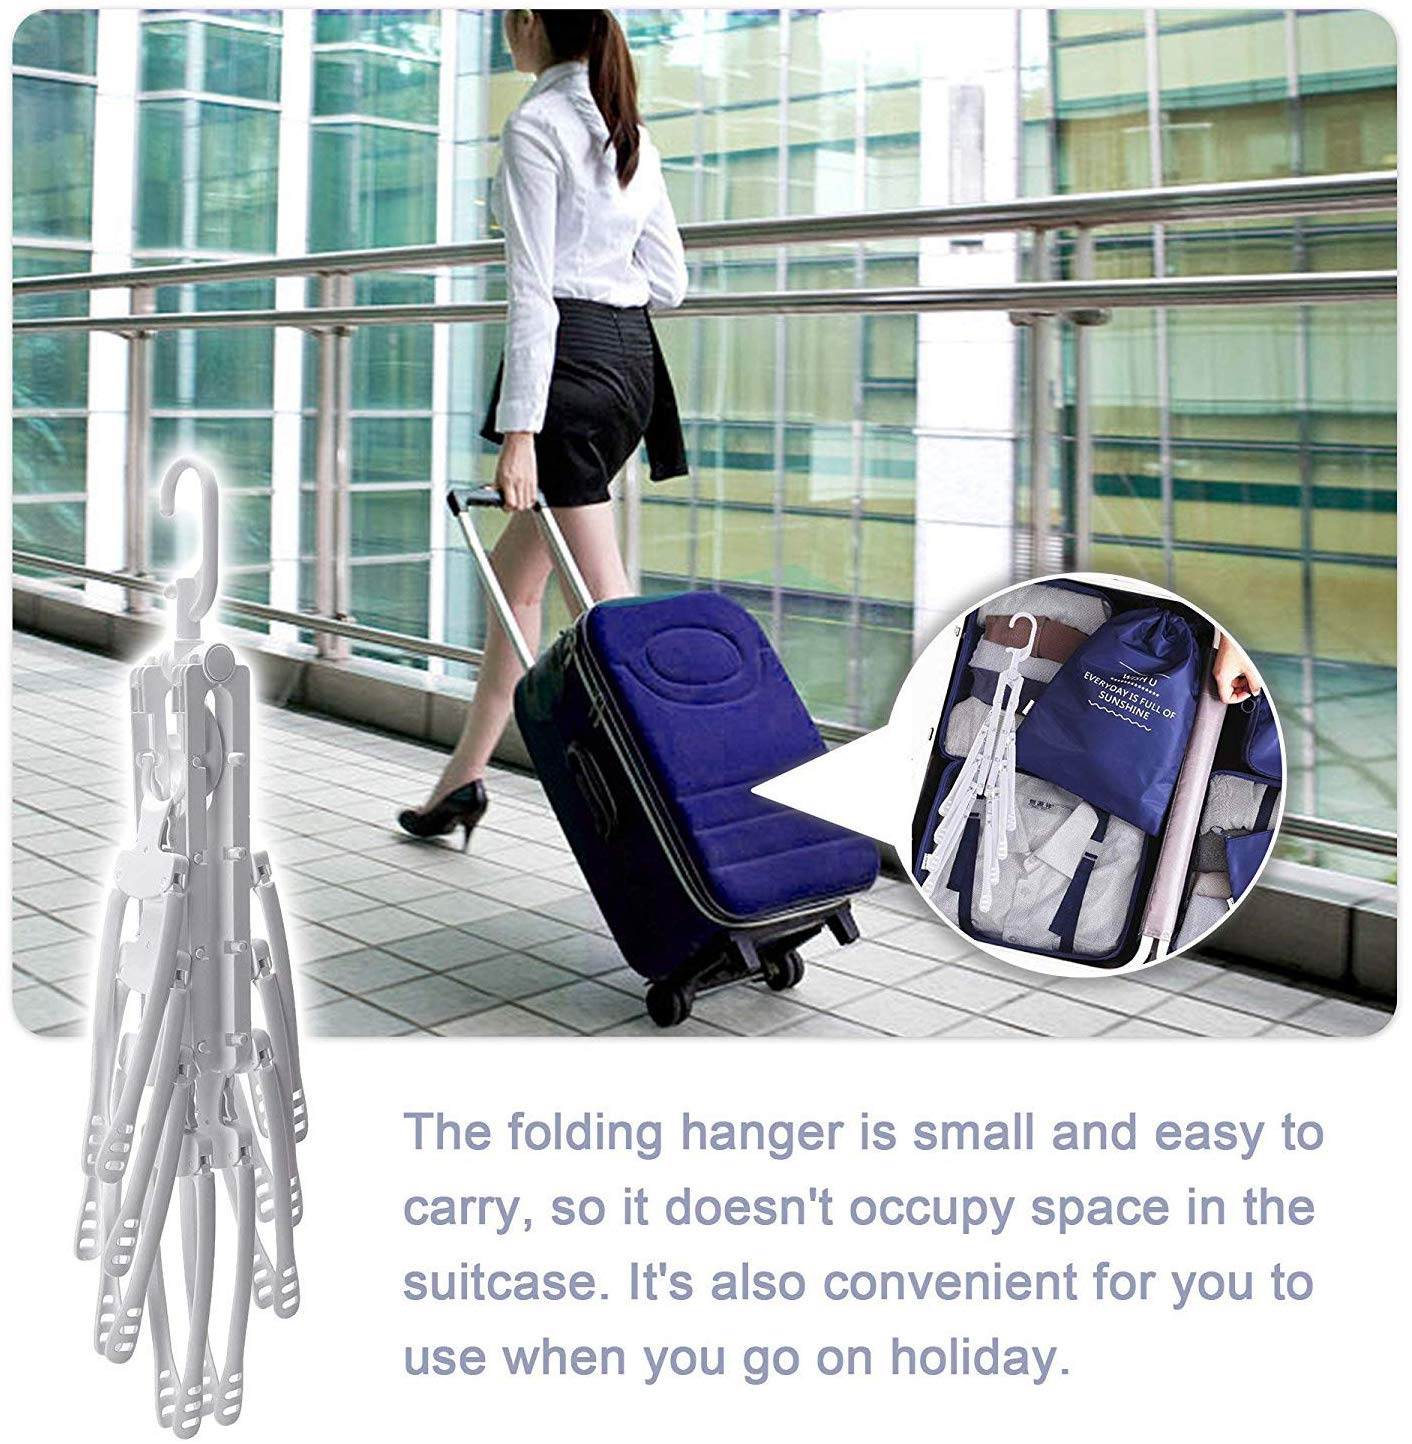 8-in-1 Space Saving Collapsible Hanger|Multi-Function Clothing Rack